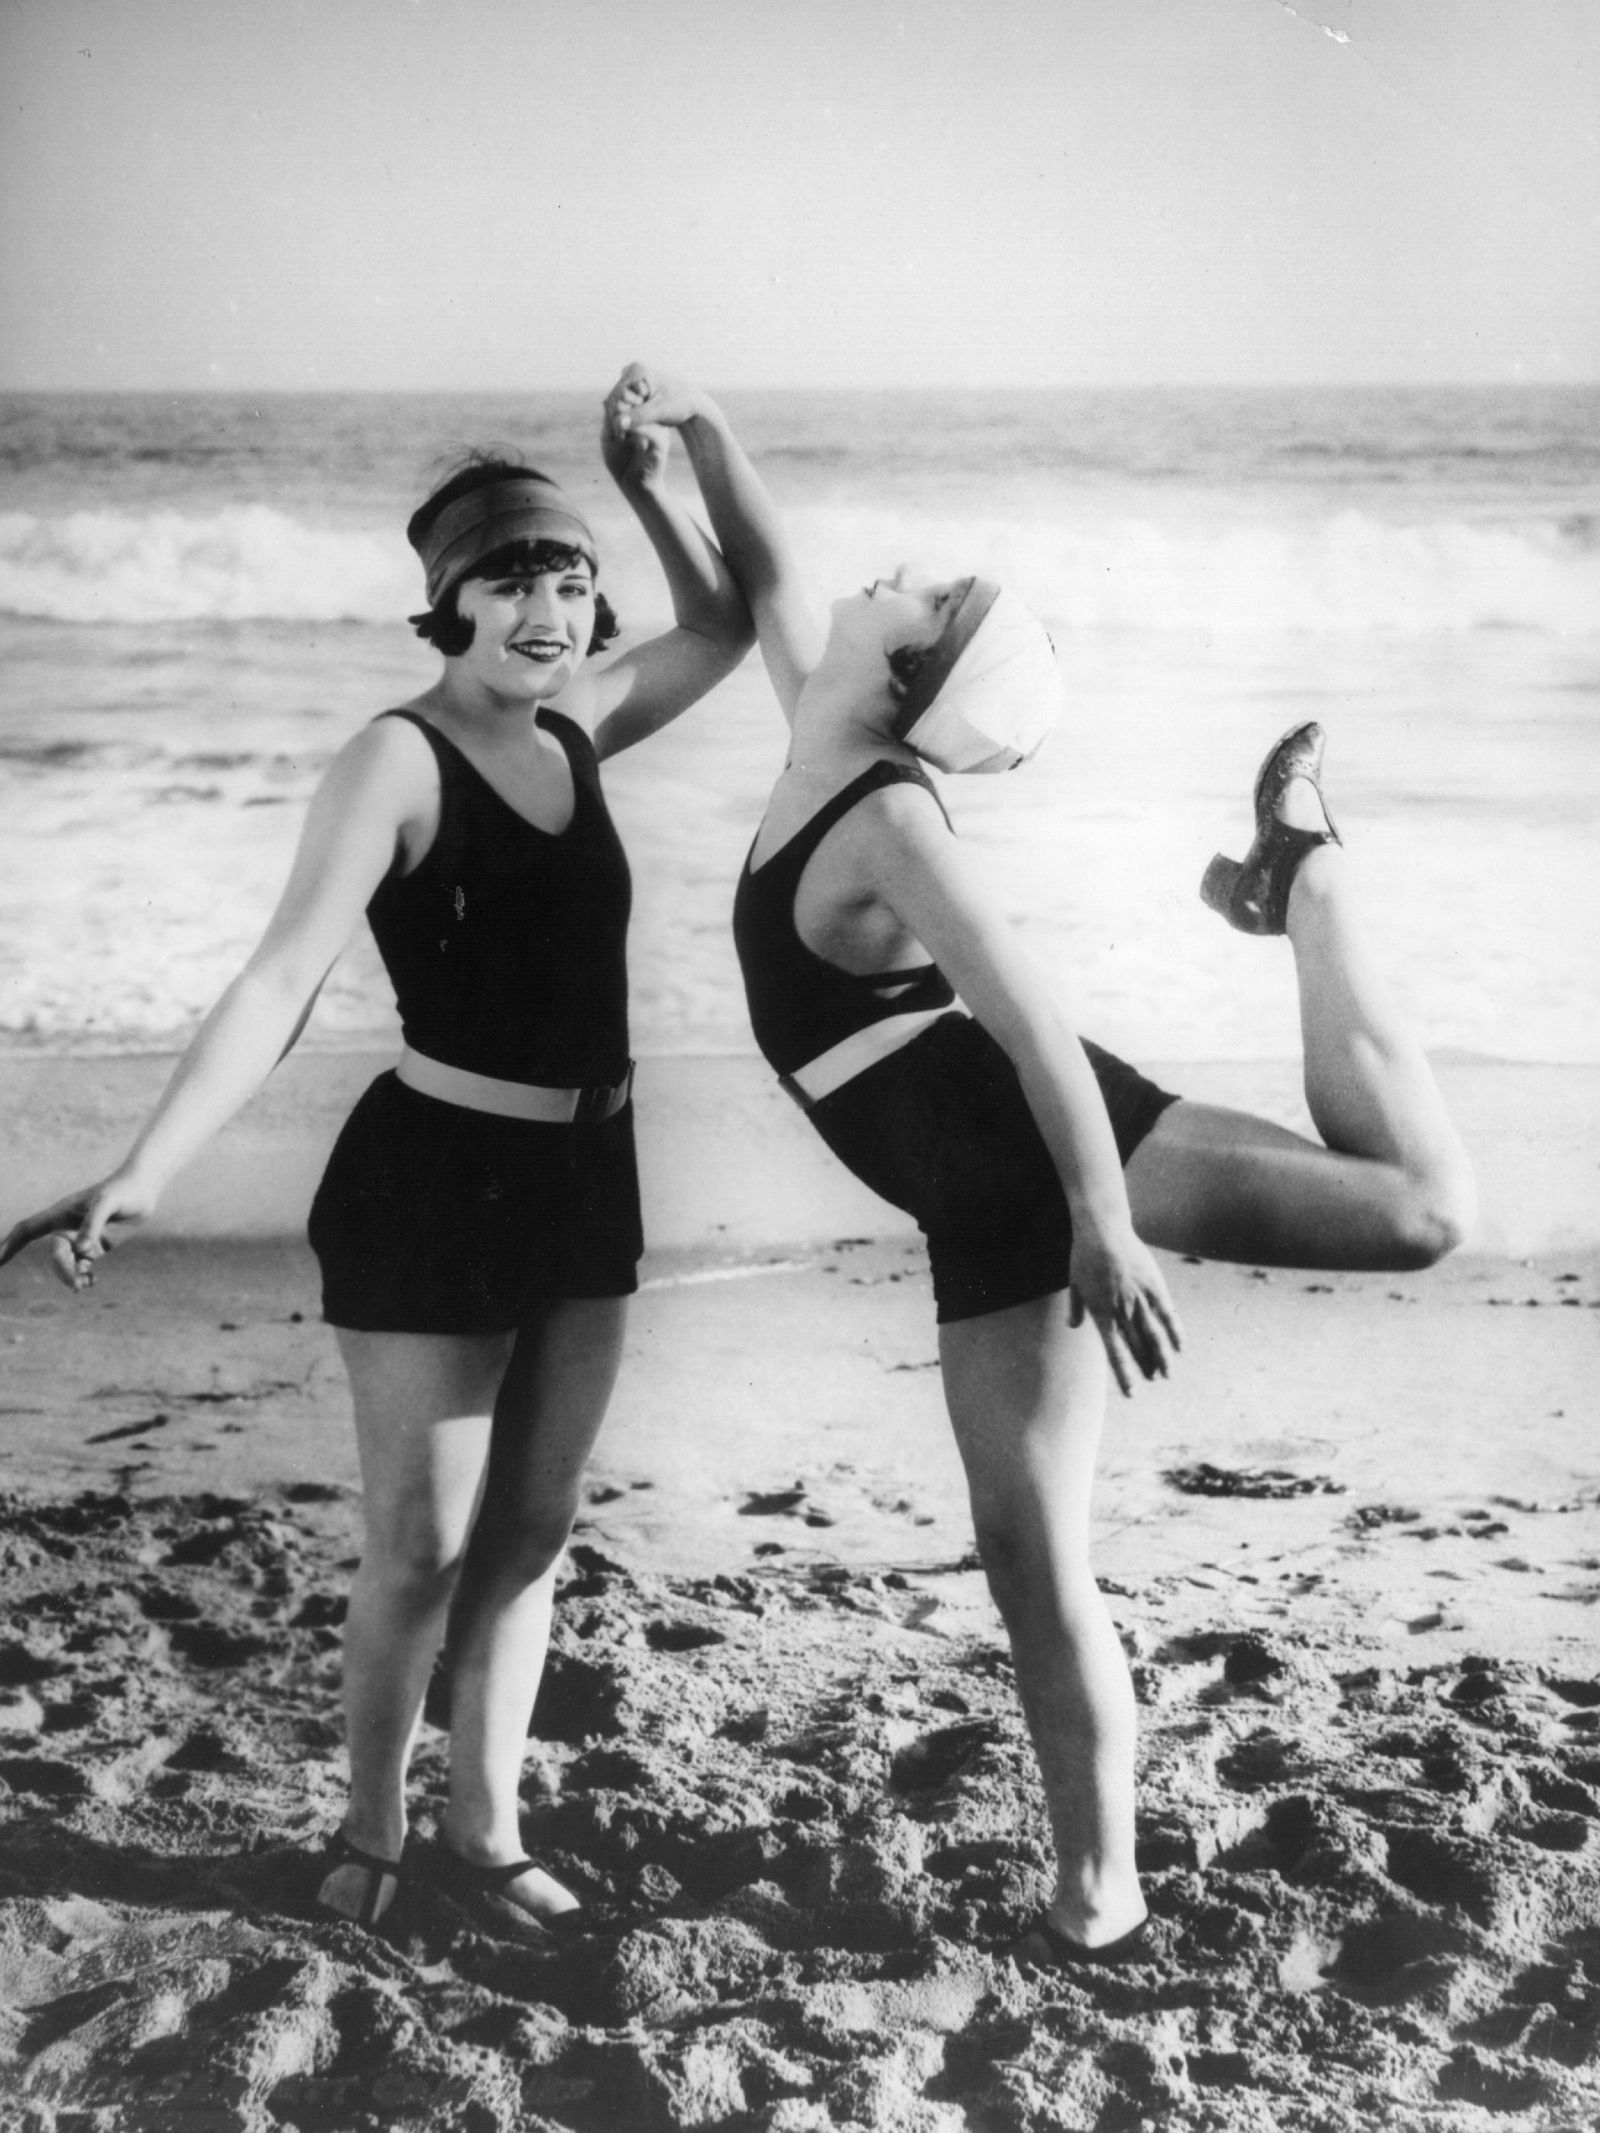 503a8a3a9b451 The Evolution of the Bathing Suit - The History of Swim Suit Styles